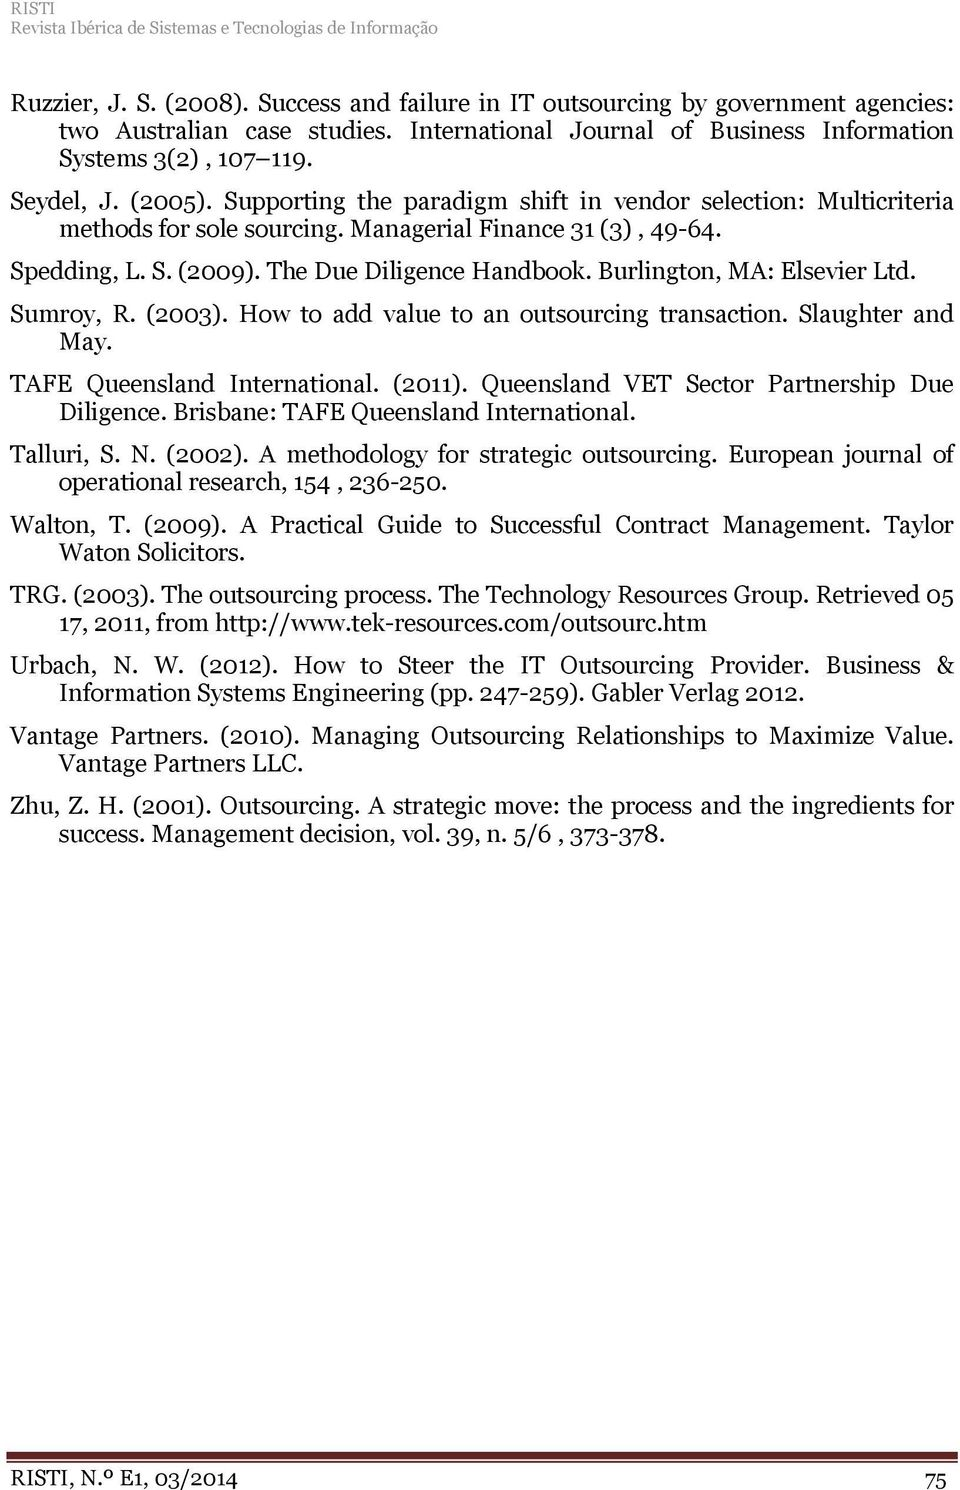 Managerial Finance 31 (3), 49-64. Spedding, L. S. (2009). The Due Diligence Handbook. Burlington, MA: Elsevier Ltd. Sumroy, R. (2003). How to add value to an outsourcing transaction.